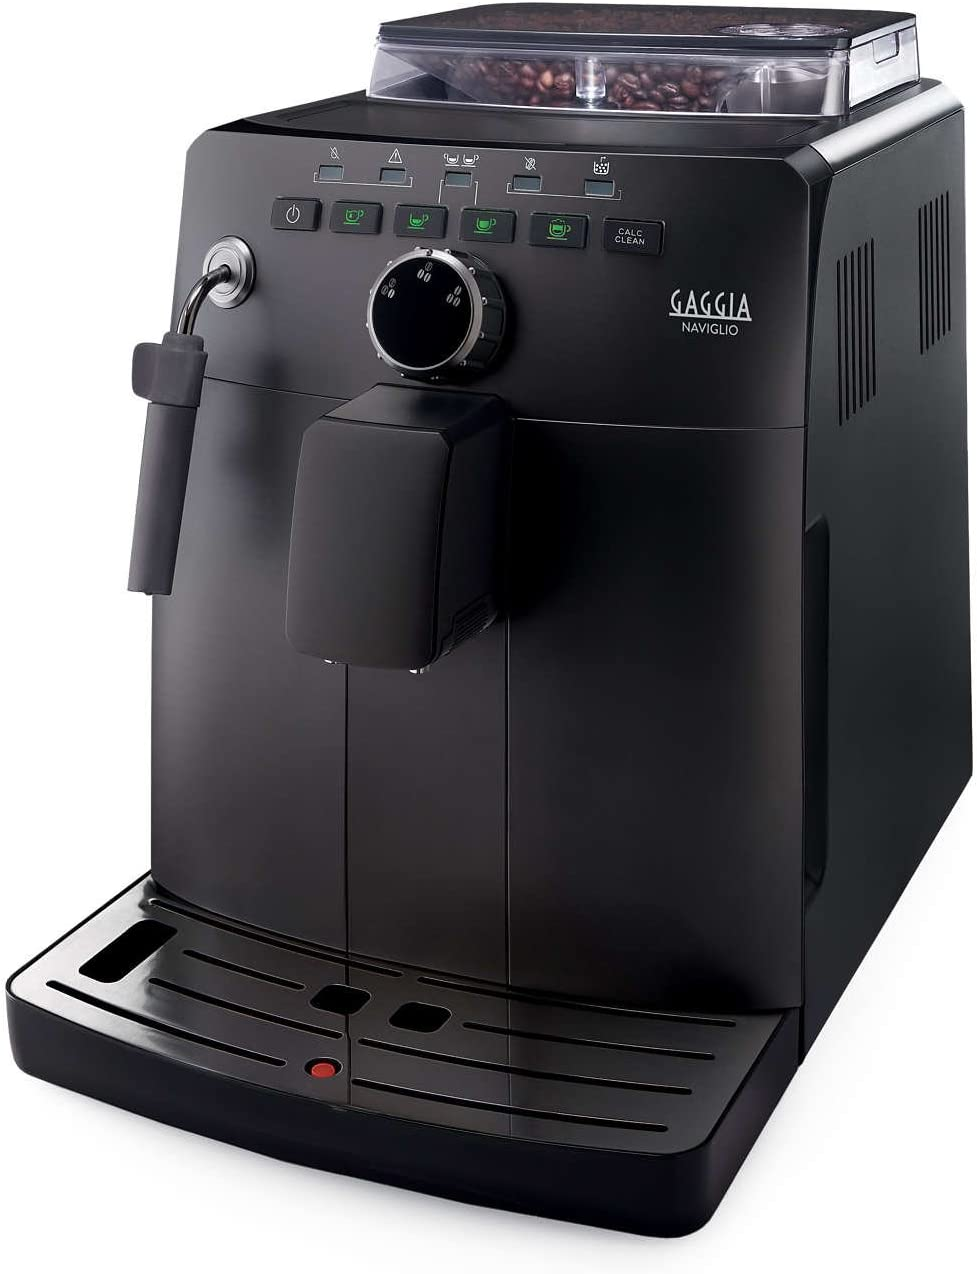 Gaggia HD8749/01 - Cafetera (Independiente, Máquina espresso, 1,5 L, Molinillo integrado, 1850 W, Negro): Amazon.es: Hogar